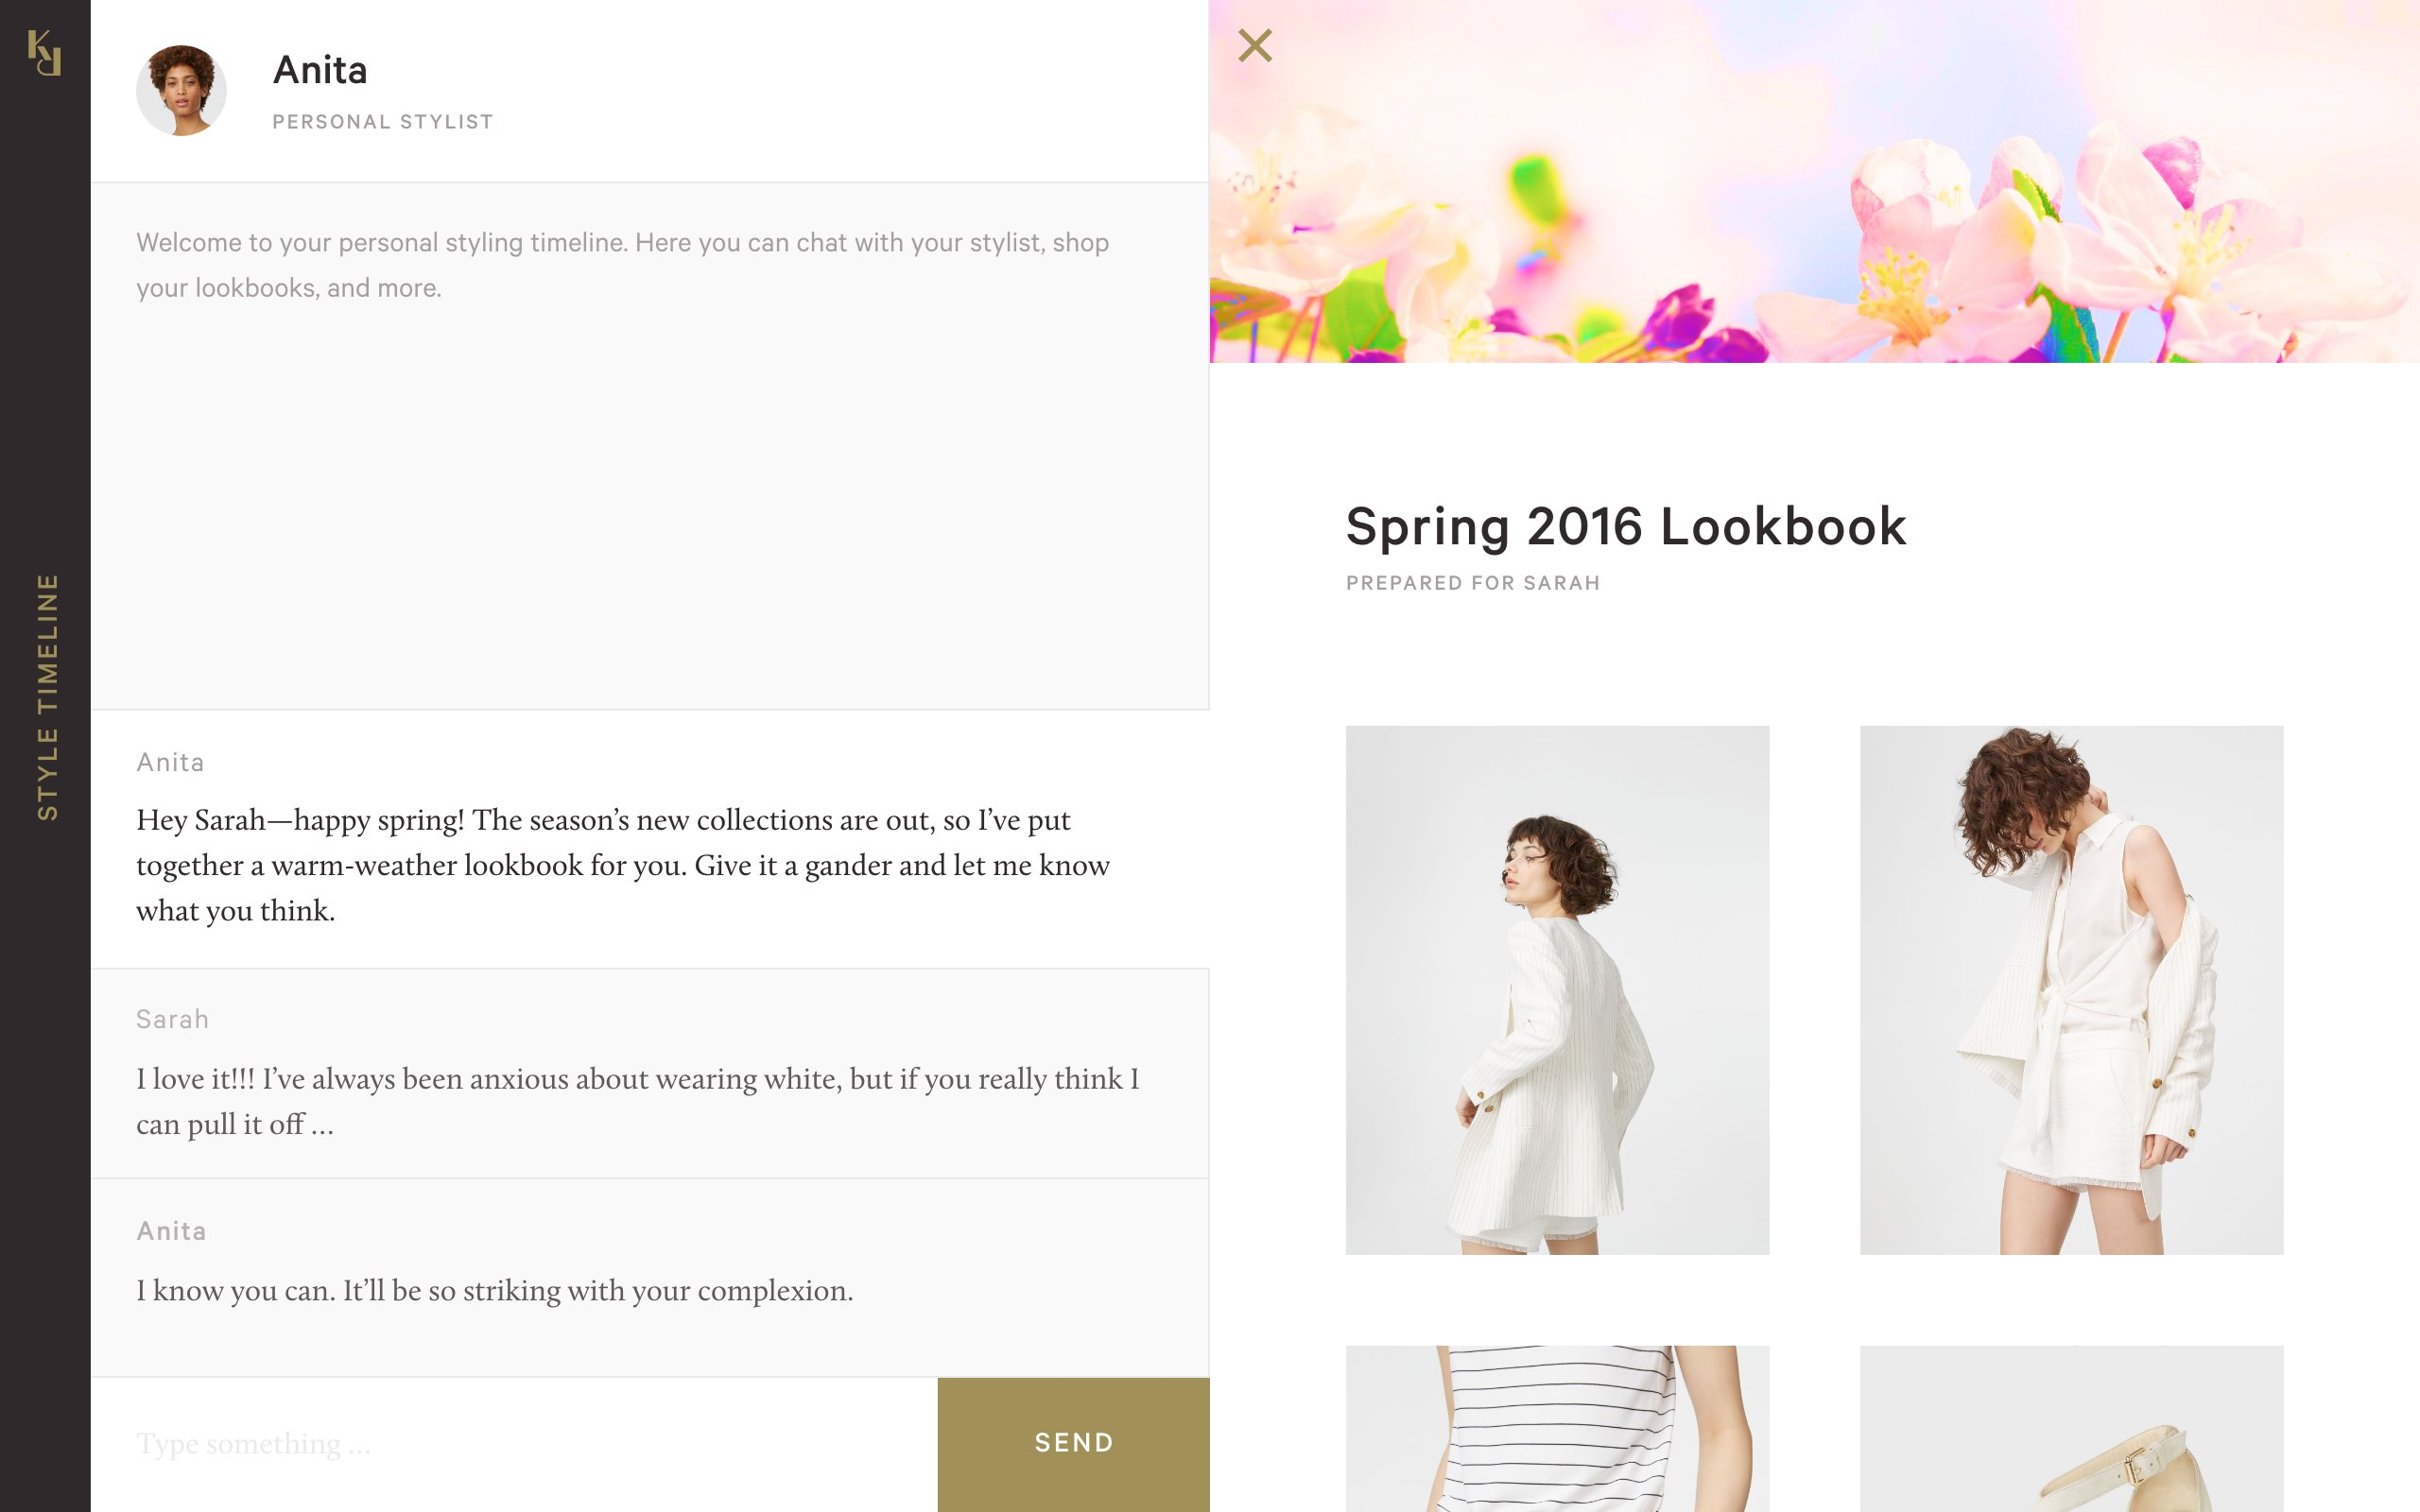 Stylist chat & lookbook